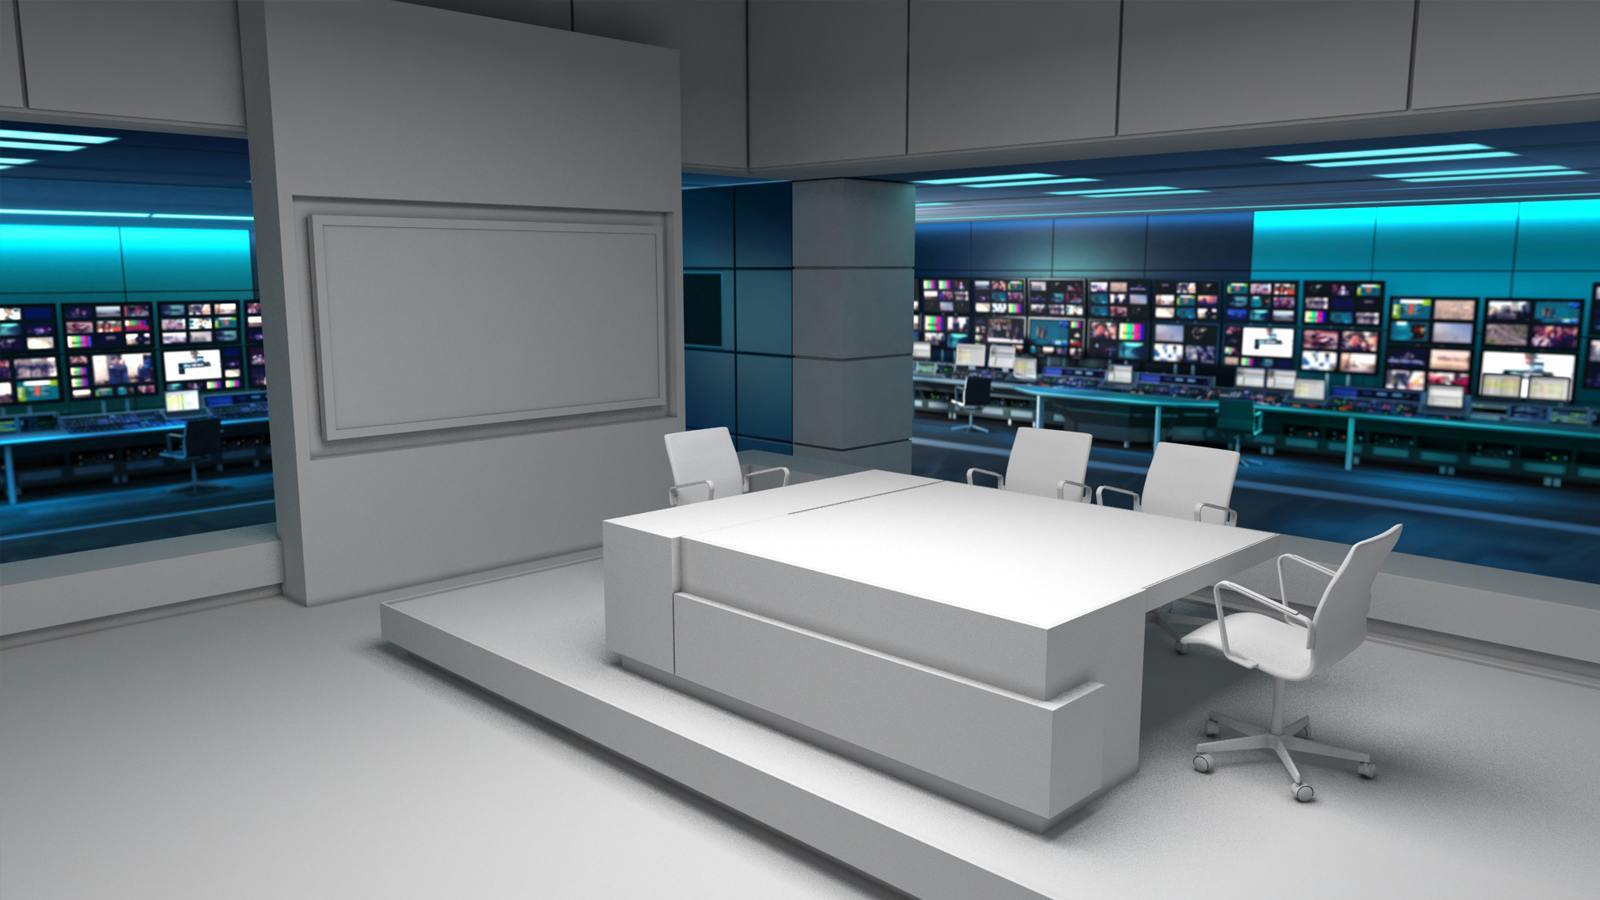 ITV News virtual set design